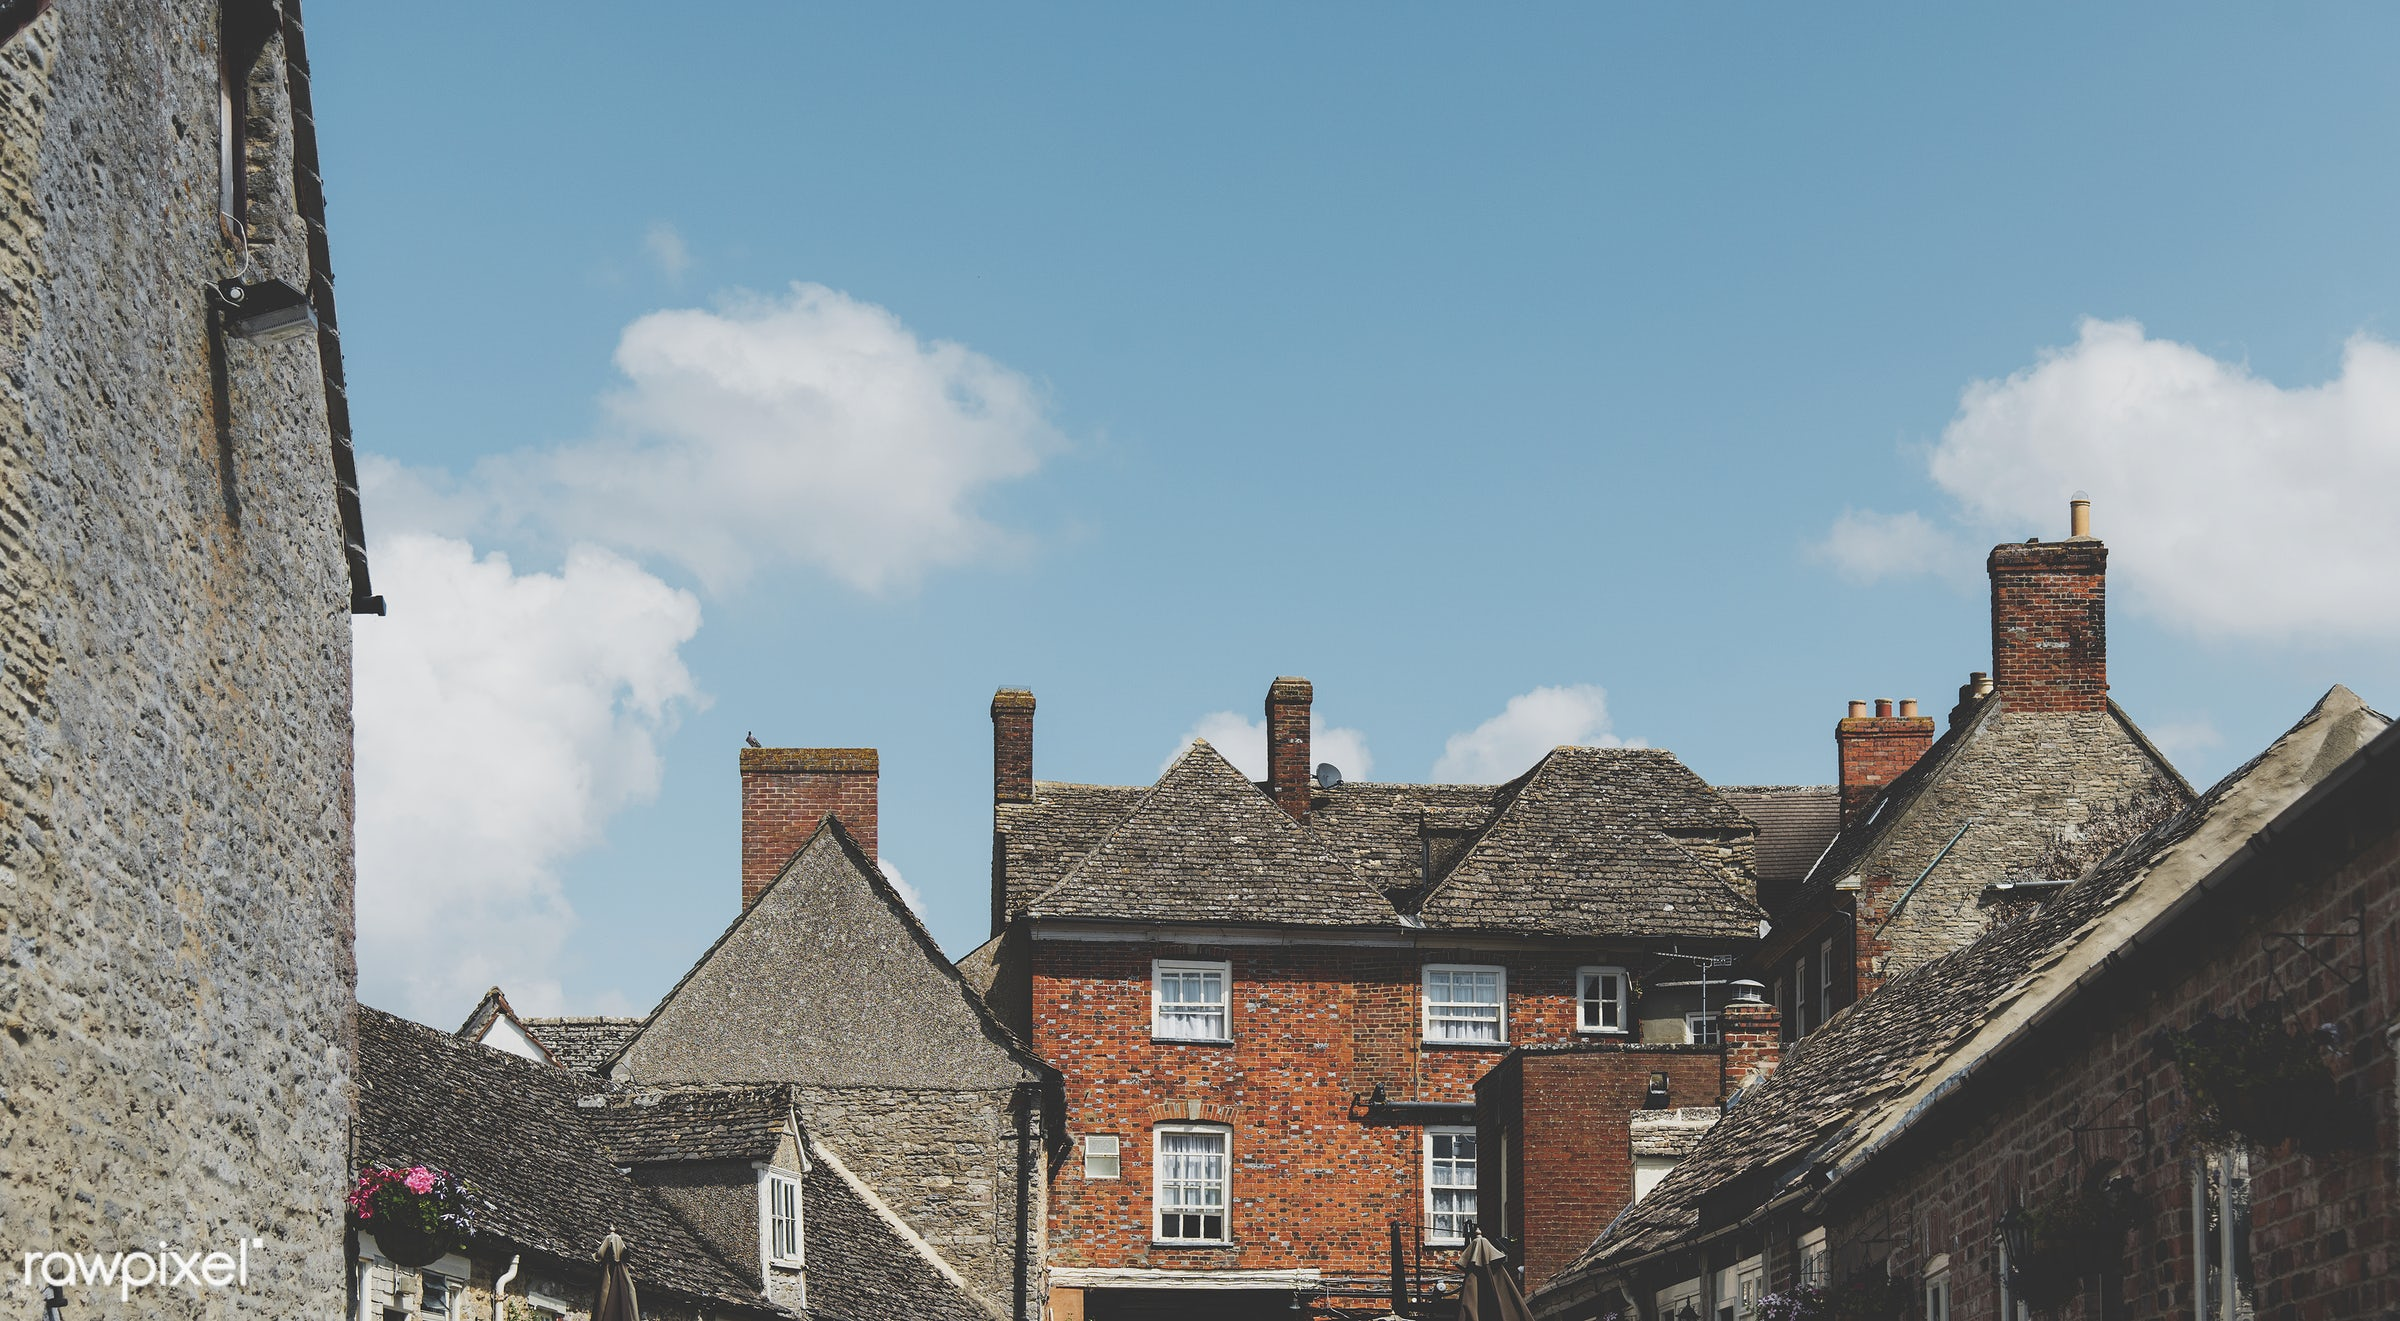 Residential house - accommodation, architecture, british, building, cement, city, community, construction, culture, decor,...